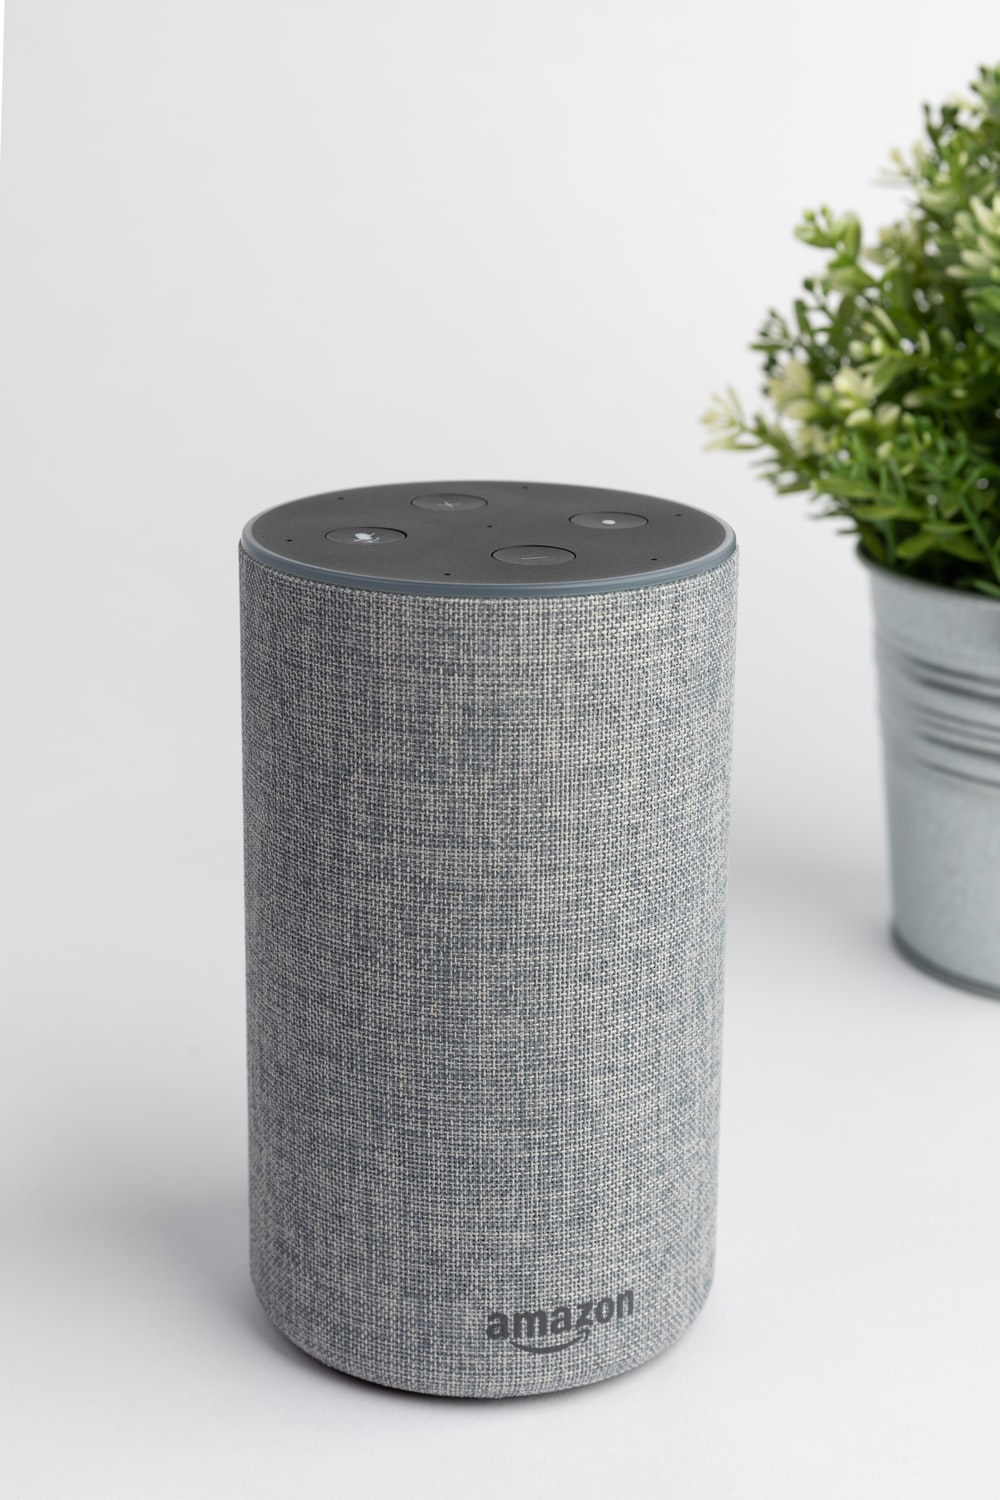 gray Amazon Echo portable speaker